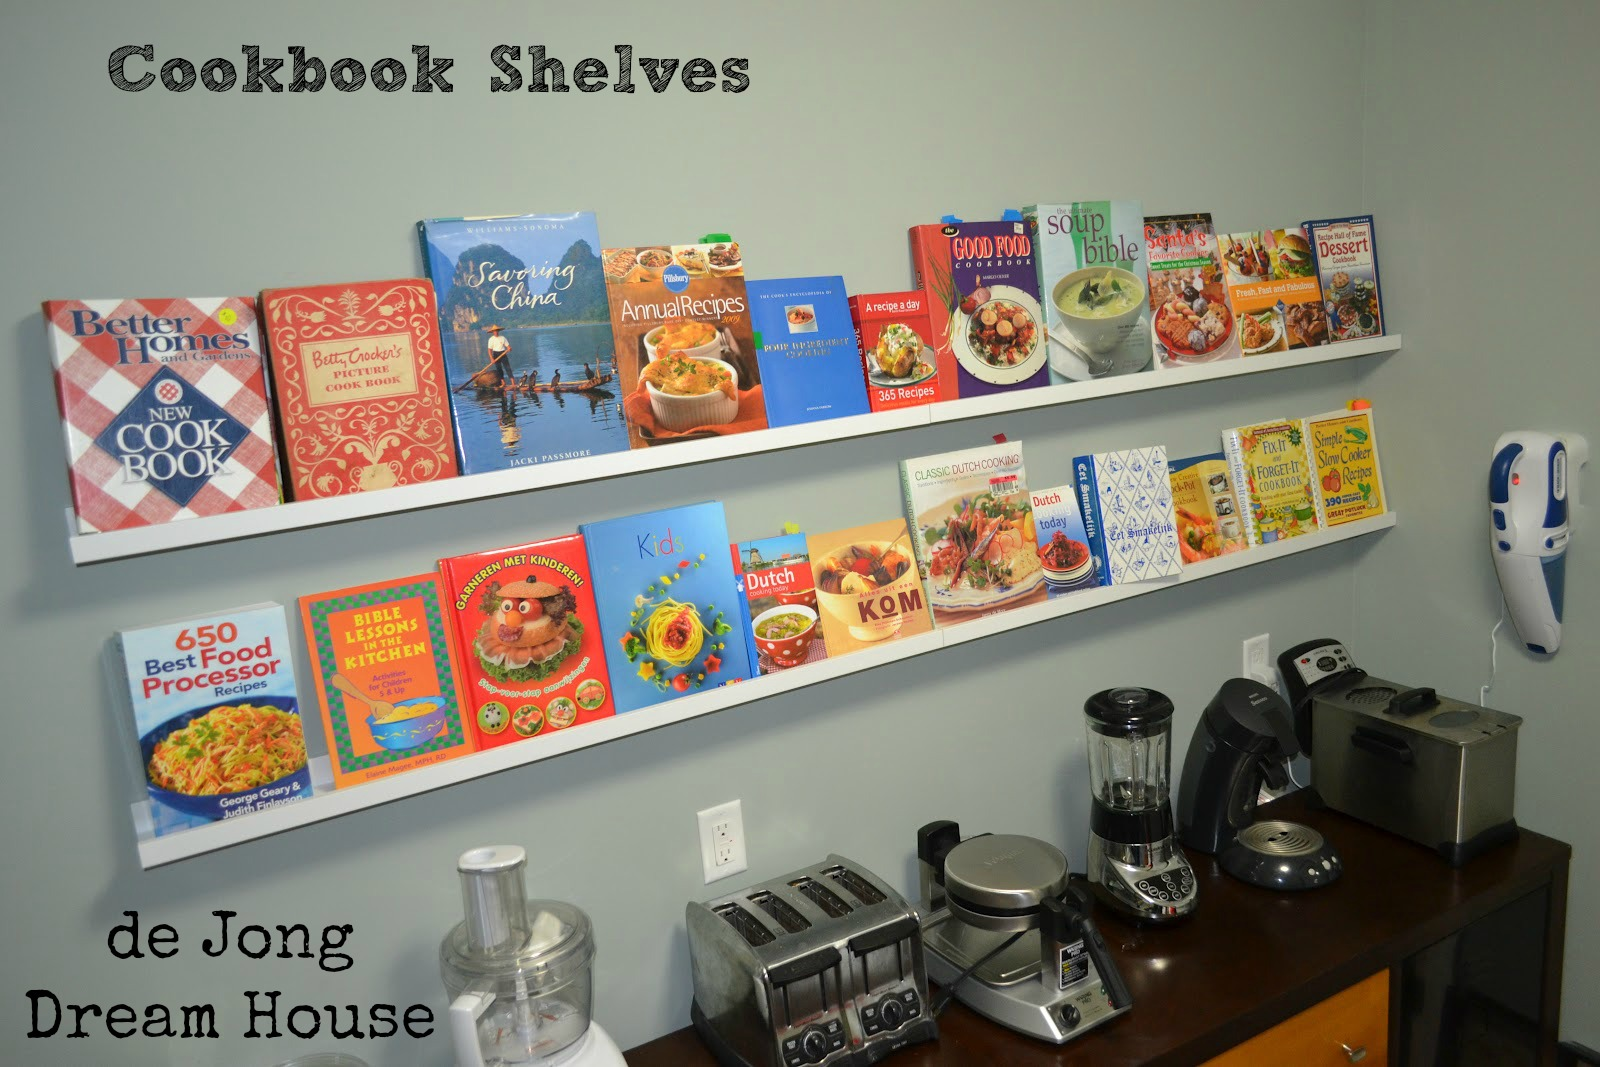 De Jong Dream House Cook Book Shelves